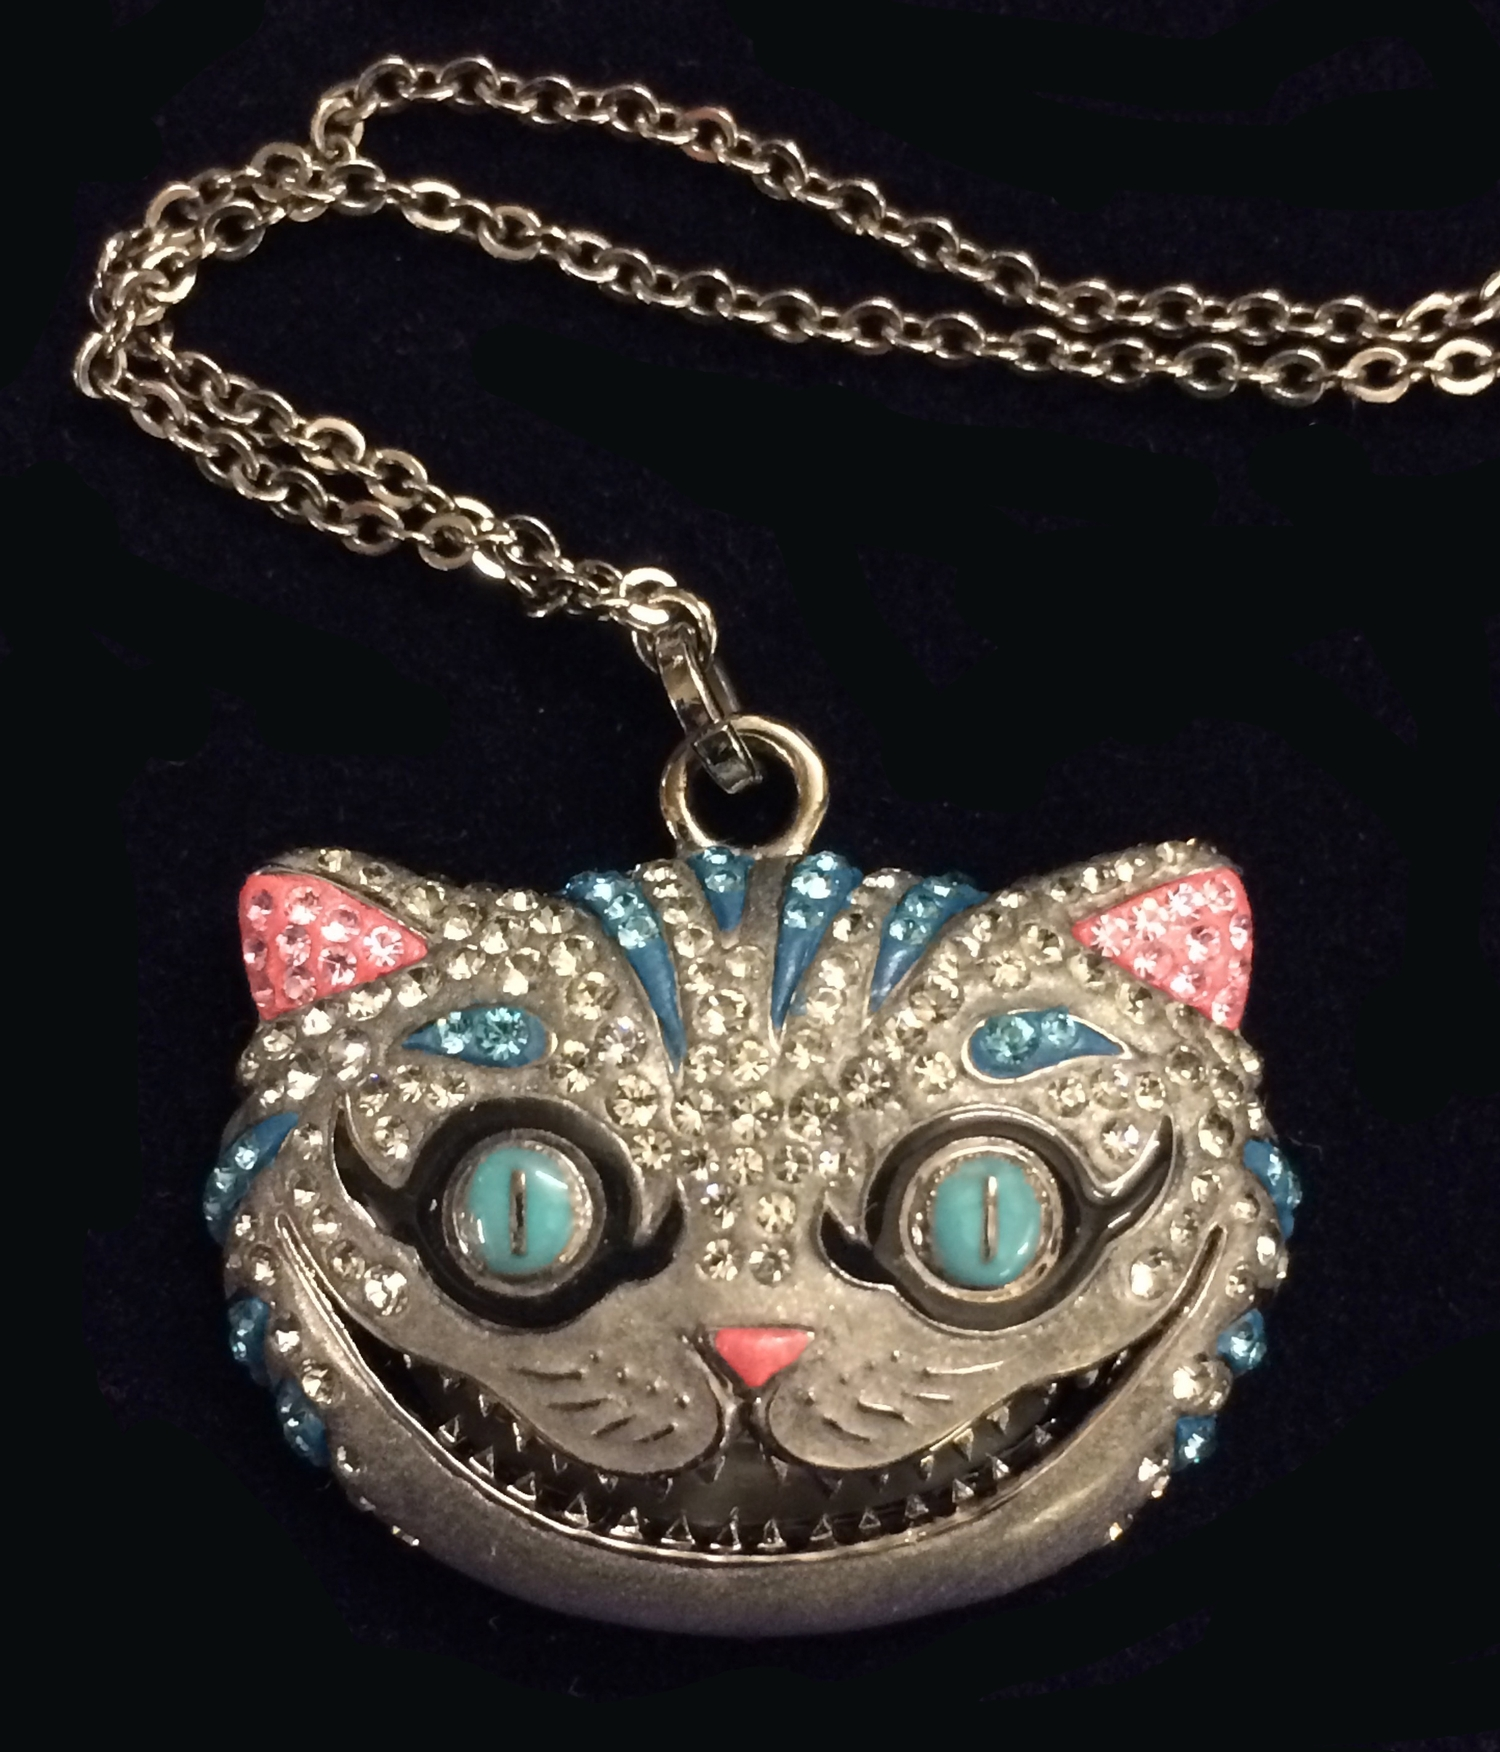 de08ec211 201 - Swarovski Limited Edition Cheshire Cat Pendant 1054415, Retired, as  new with original. 1/2